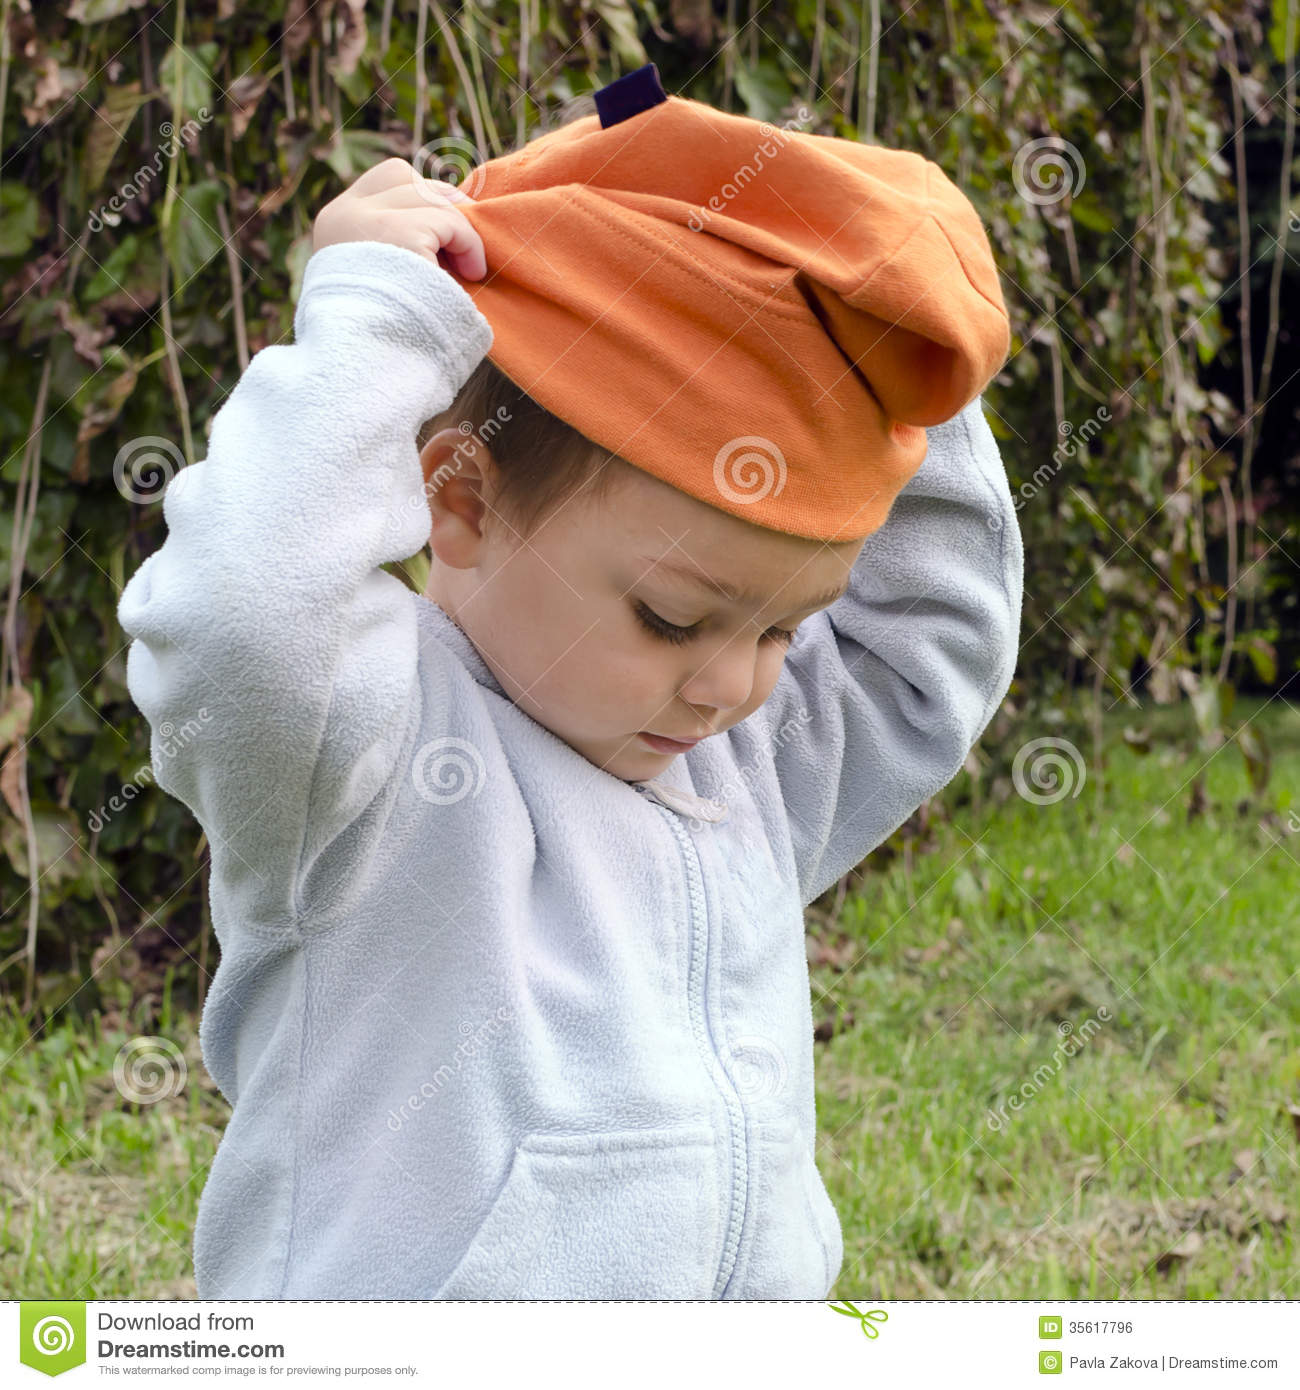 Child Putting On Hat Royalty Free Stock Image - Image: 35617796